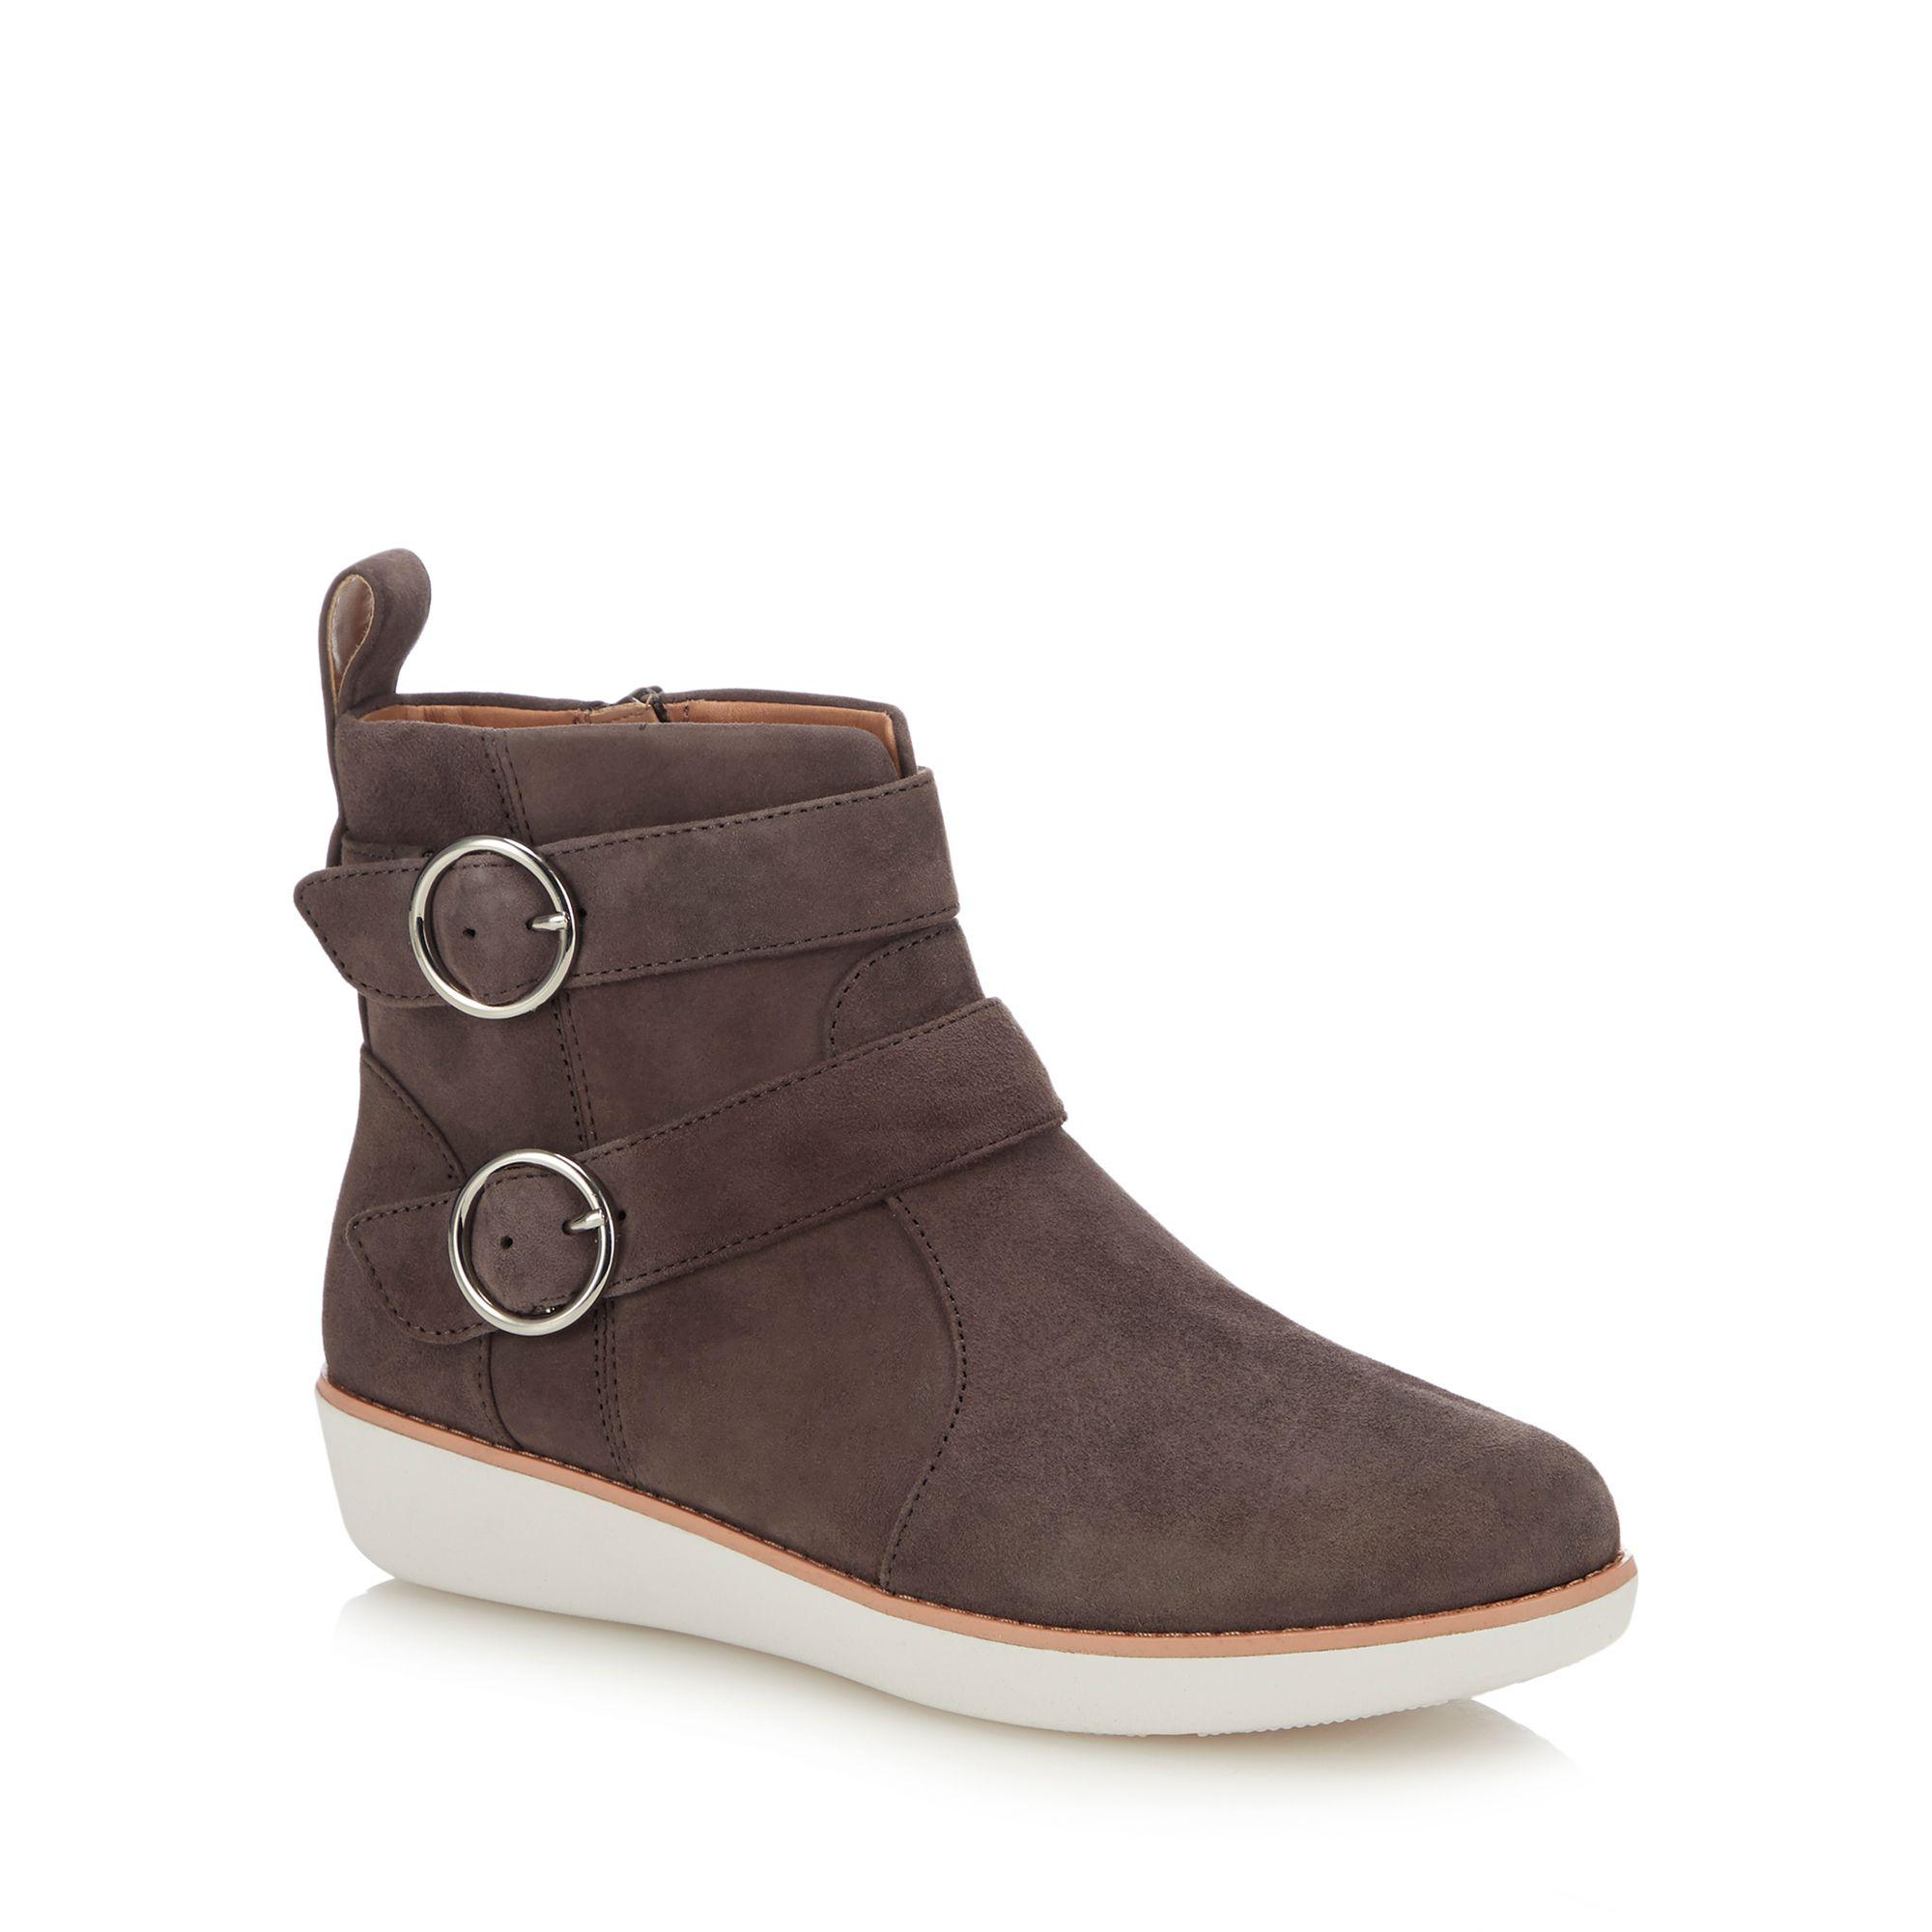 1588b905b276 Fitflop Grey Suede  oona Buckle  Ankle Boots in Gray - Lyst